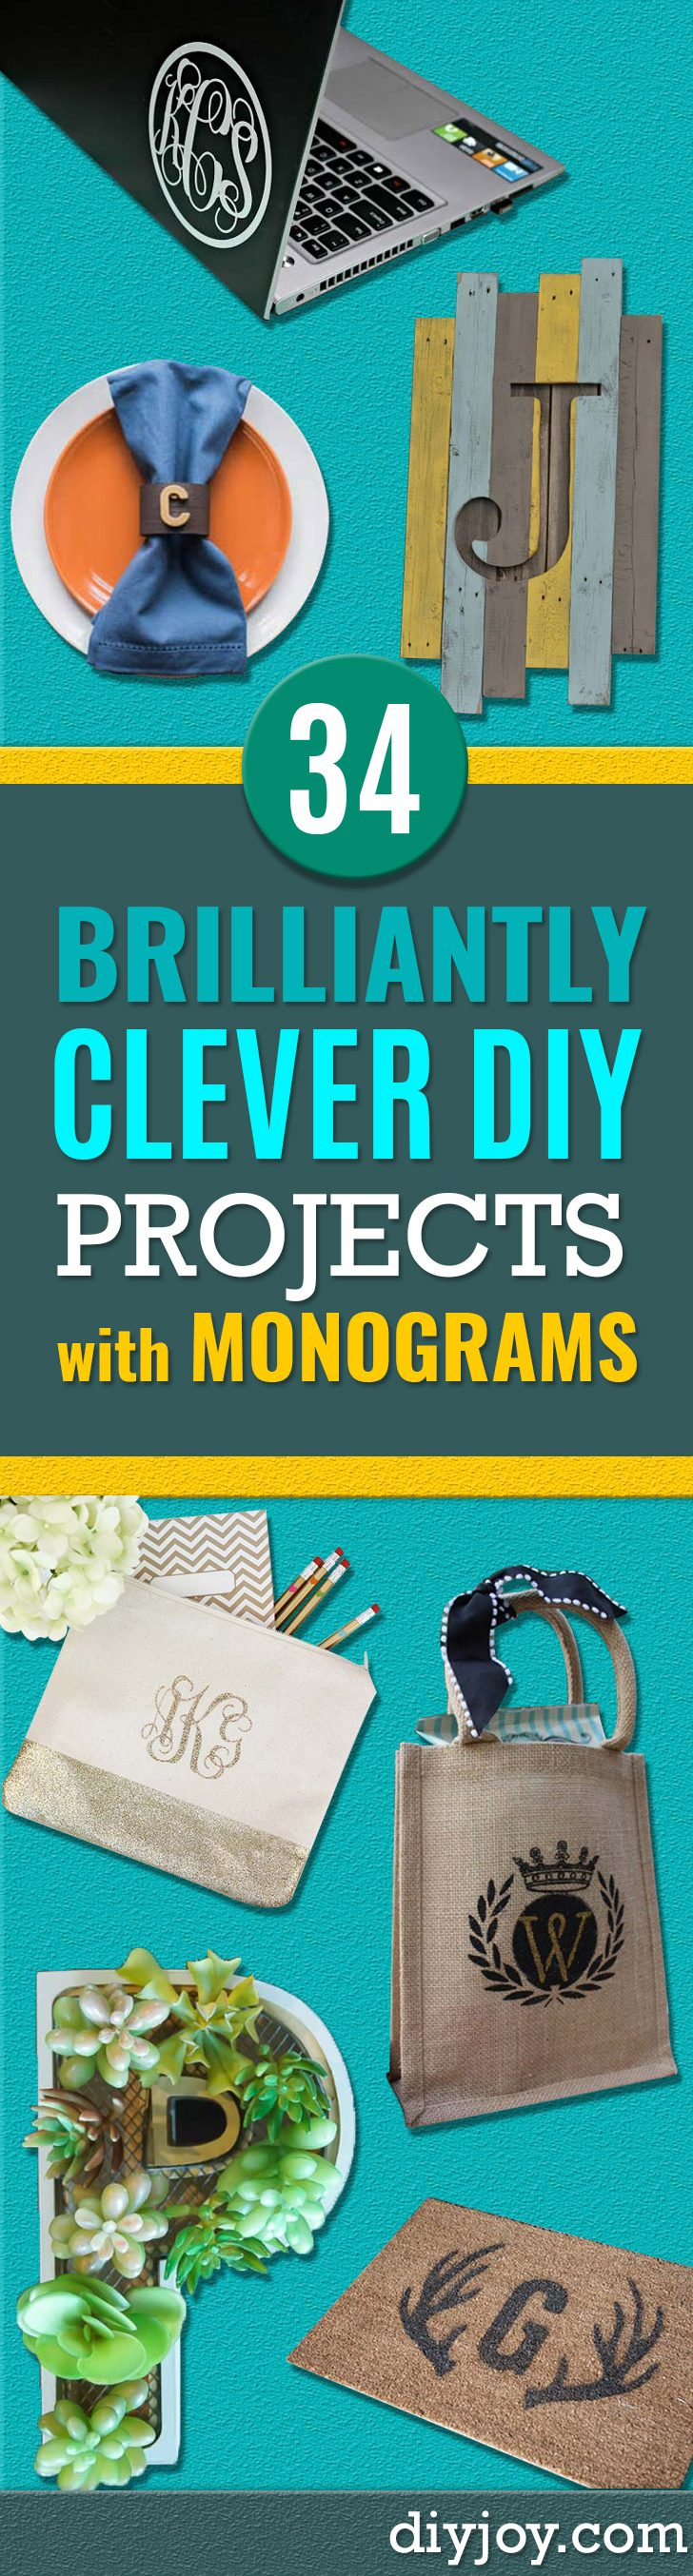 34 Brilliantly Clever DIY Projects With Monograms